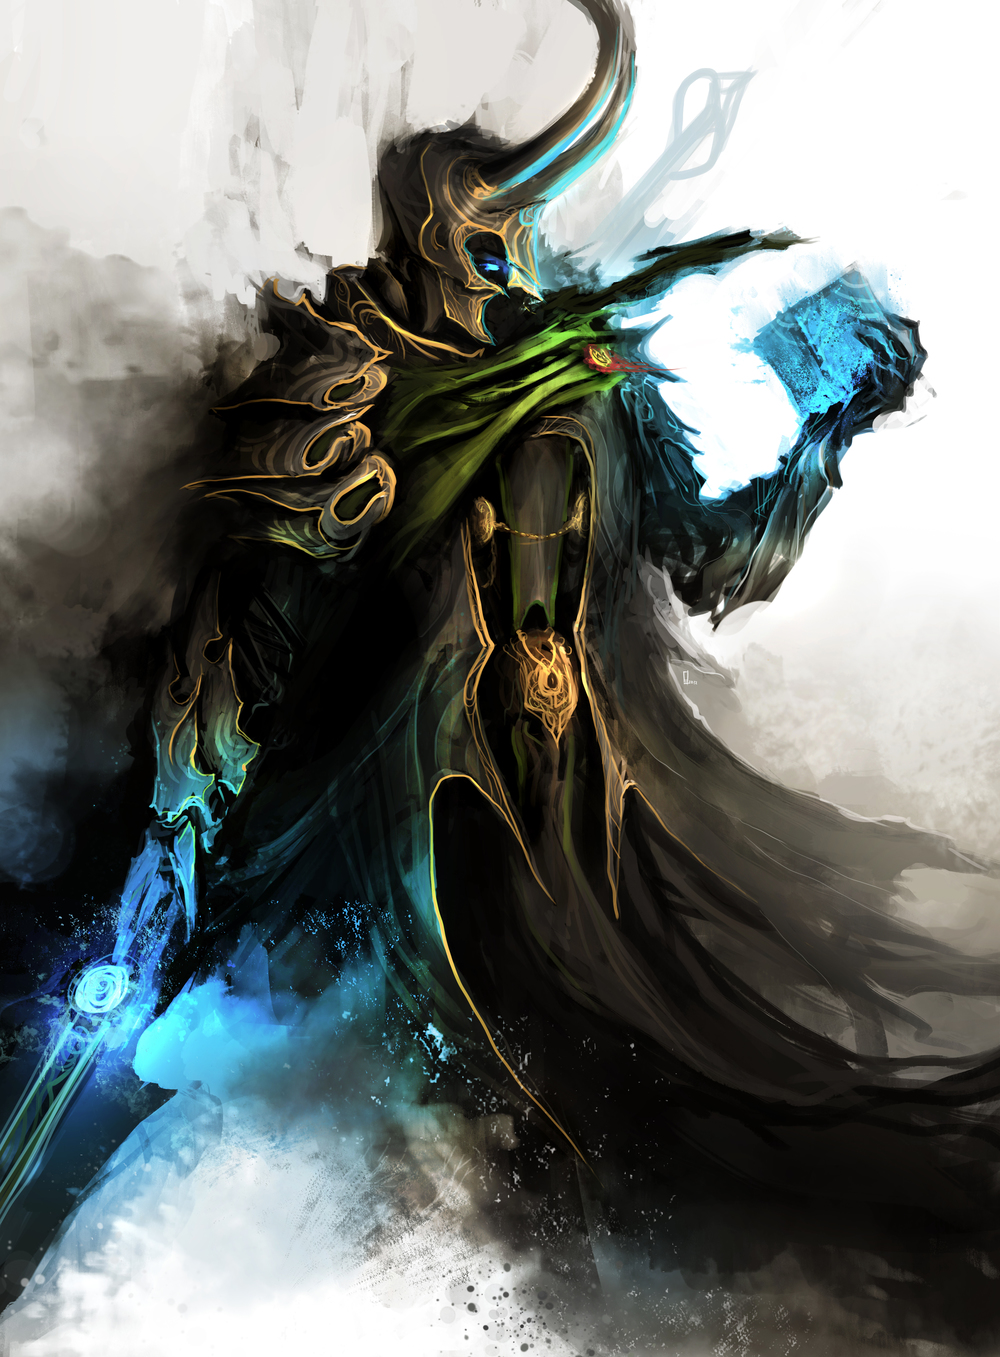 the_avengers___loki_by_thedurrrrian-d52yvub.jpg